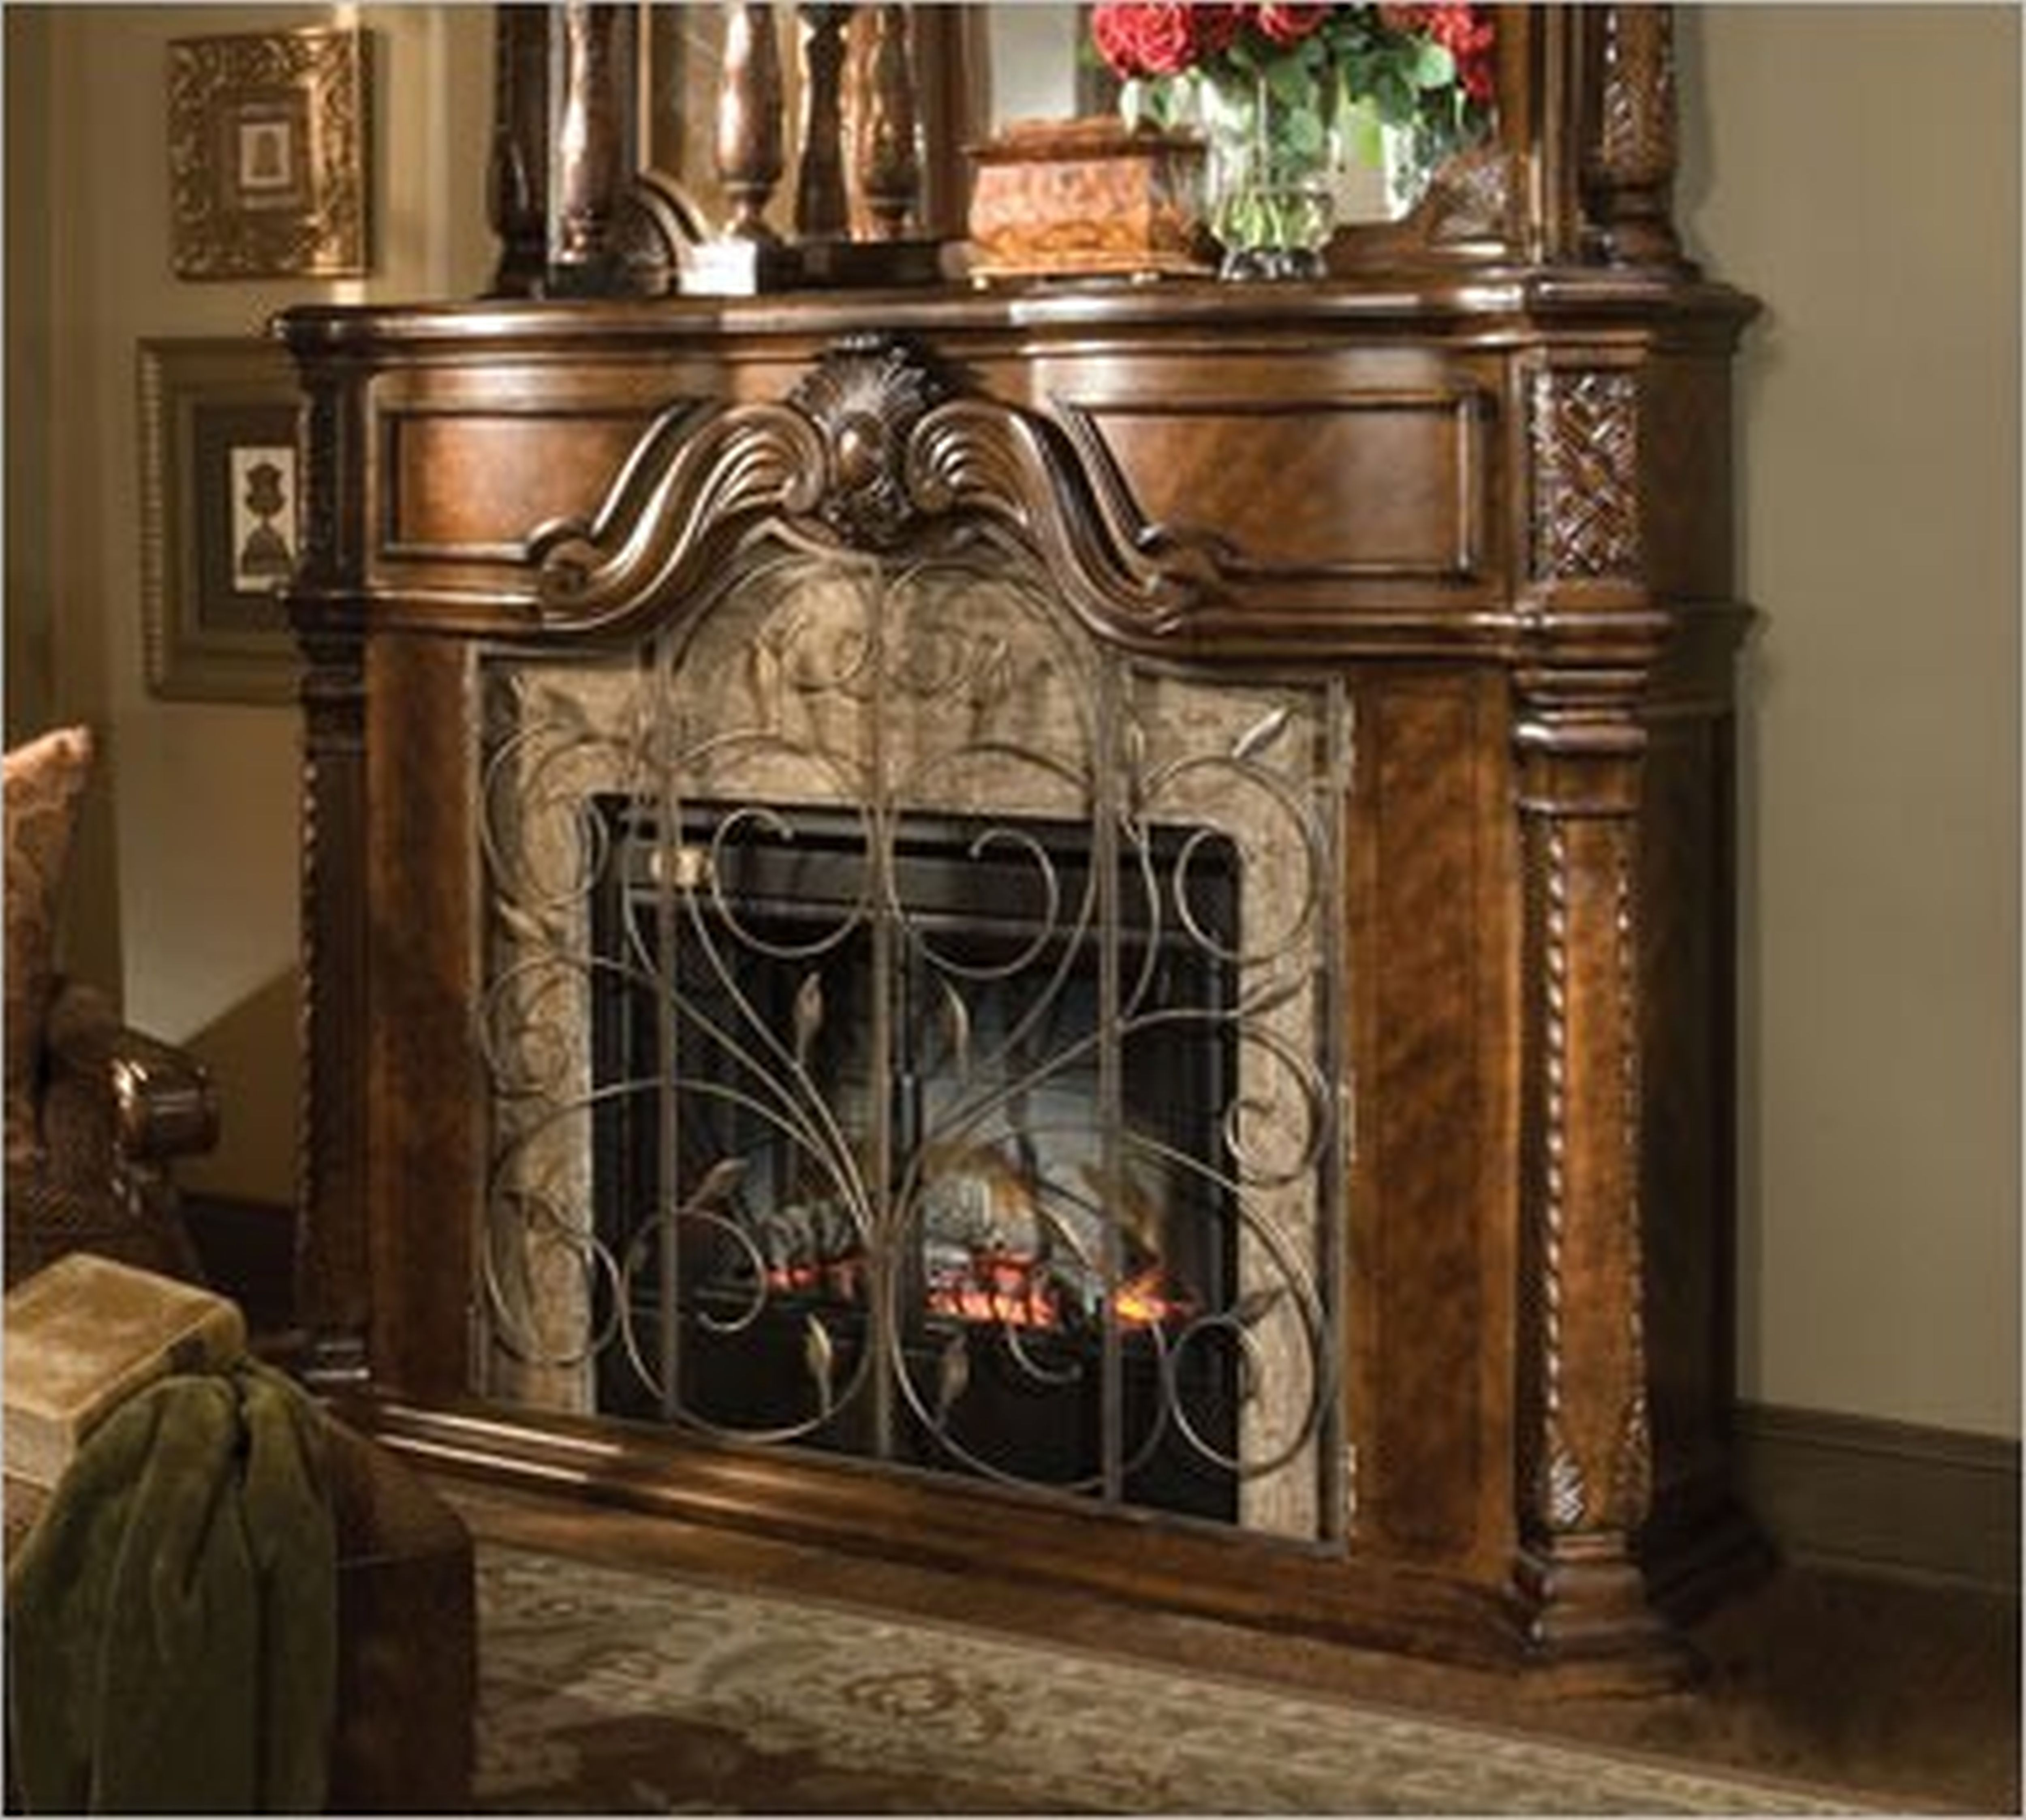 for your a on build porch com really to how modern you incredible within it screened fabric fireplace can have cost in much does with about tv coursecanary what